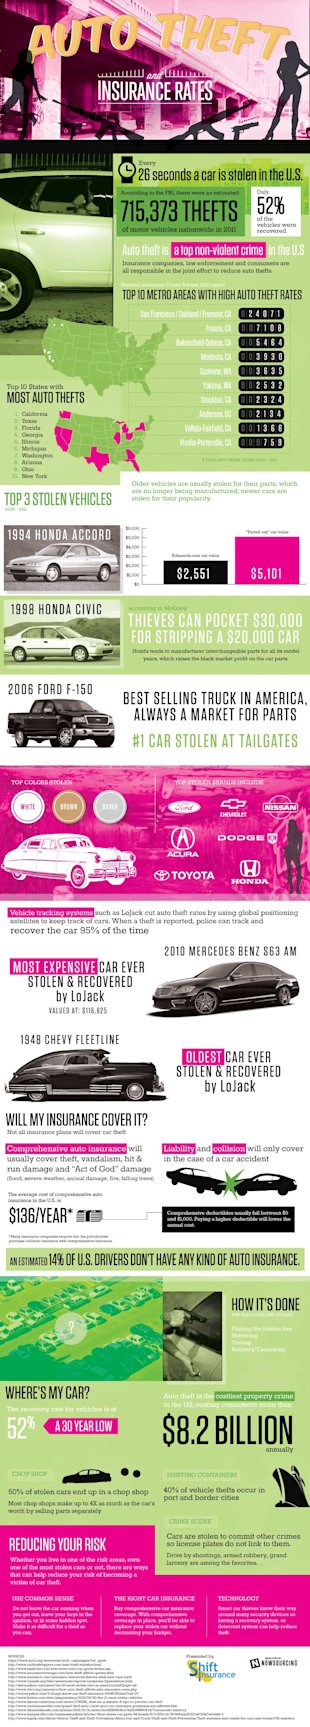 Car Theft and Insurance Rates [Infographic] image car theft and insurance rates1